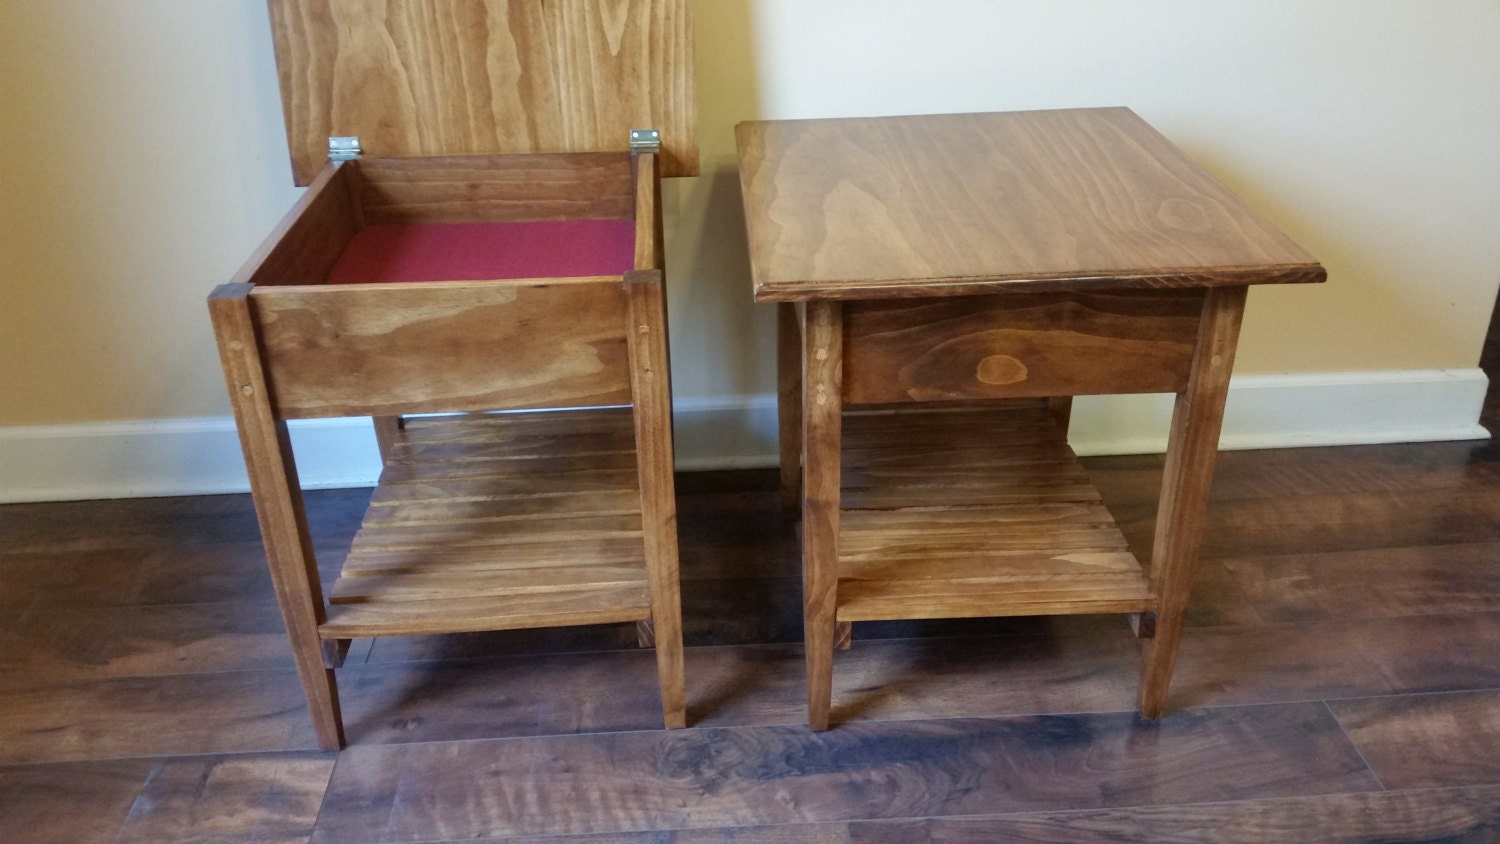 Concealment Furniture By Concealfurniture On Etsy